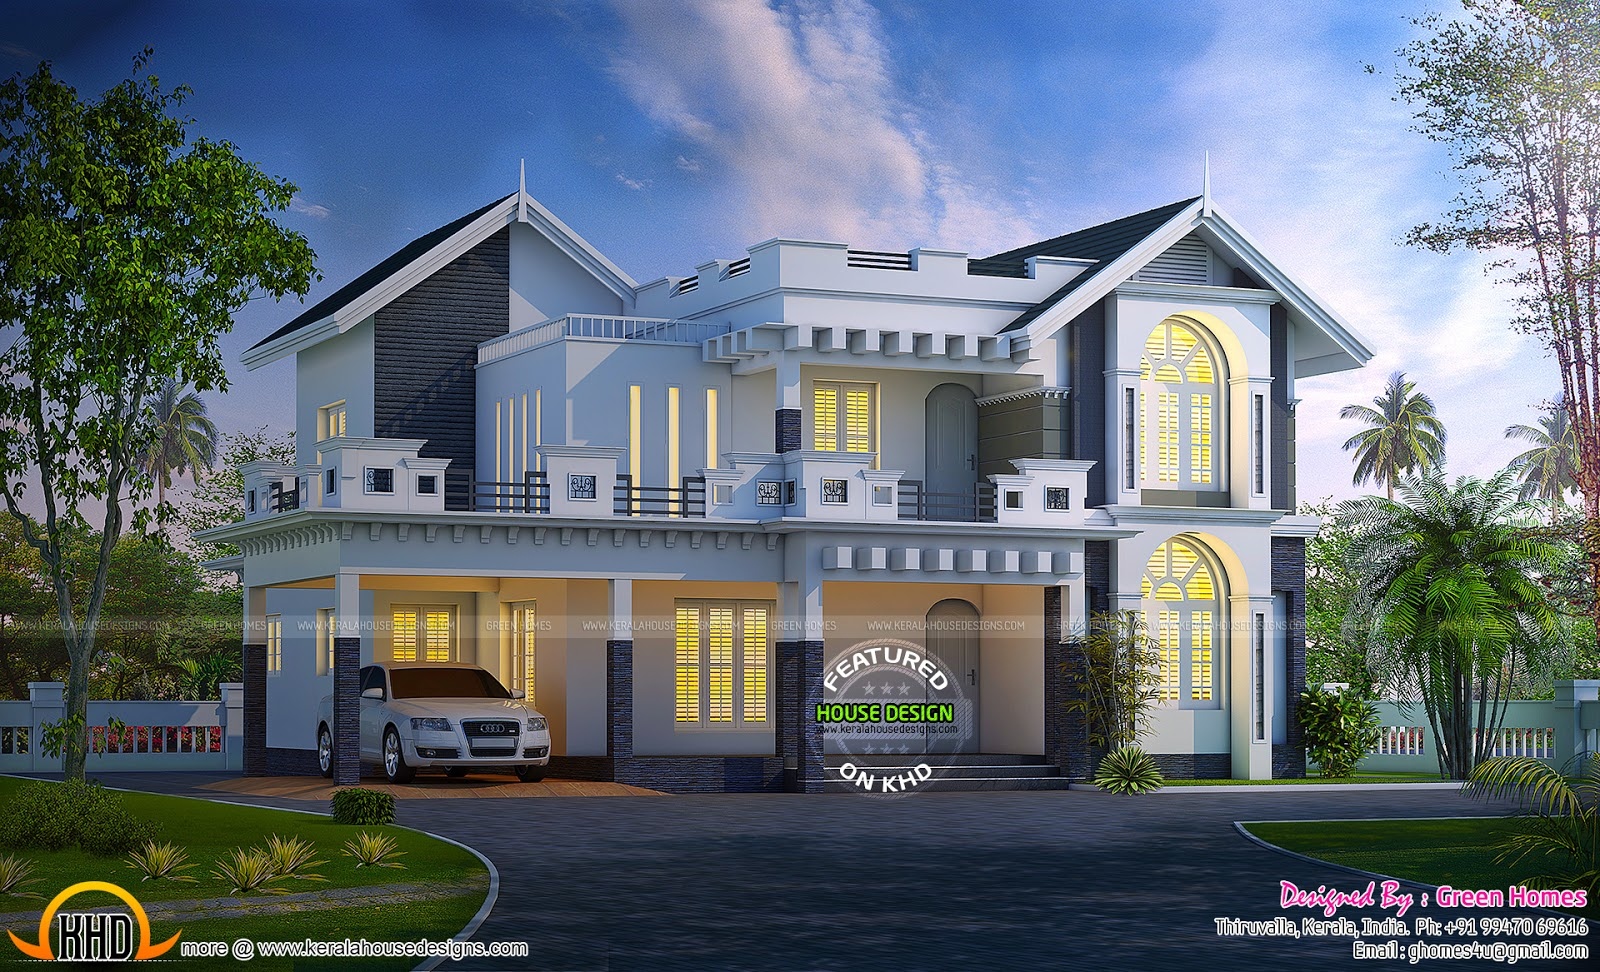 New kerala house plans for june 2015 keralahousedesigns for New home design in kerala